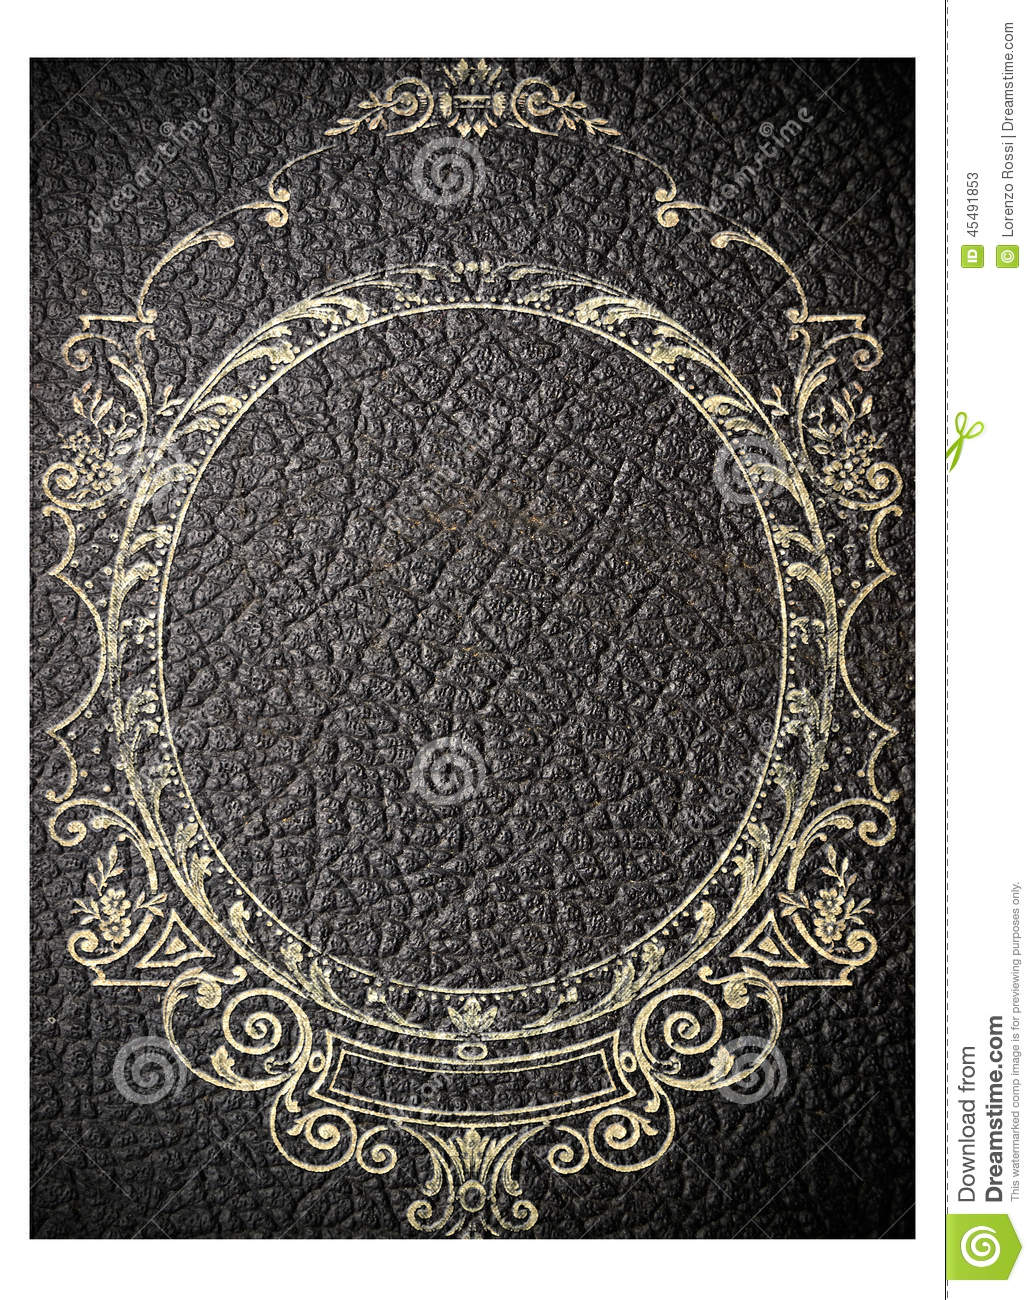 Book Cover Black Xs : Old black leather book cover stock photo image